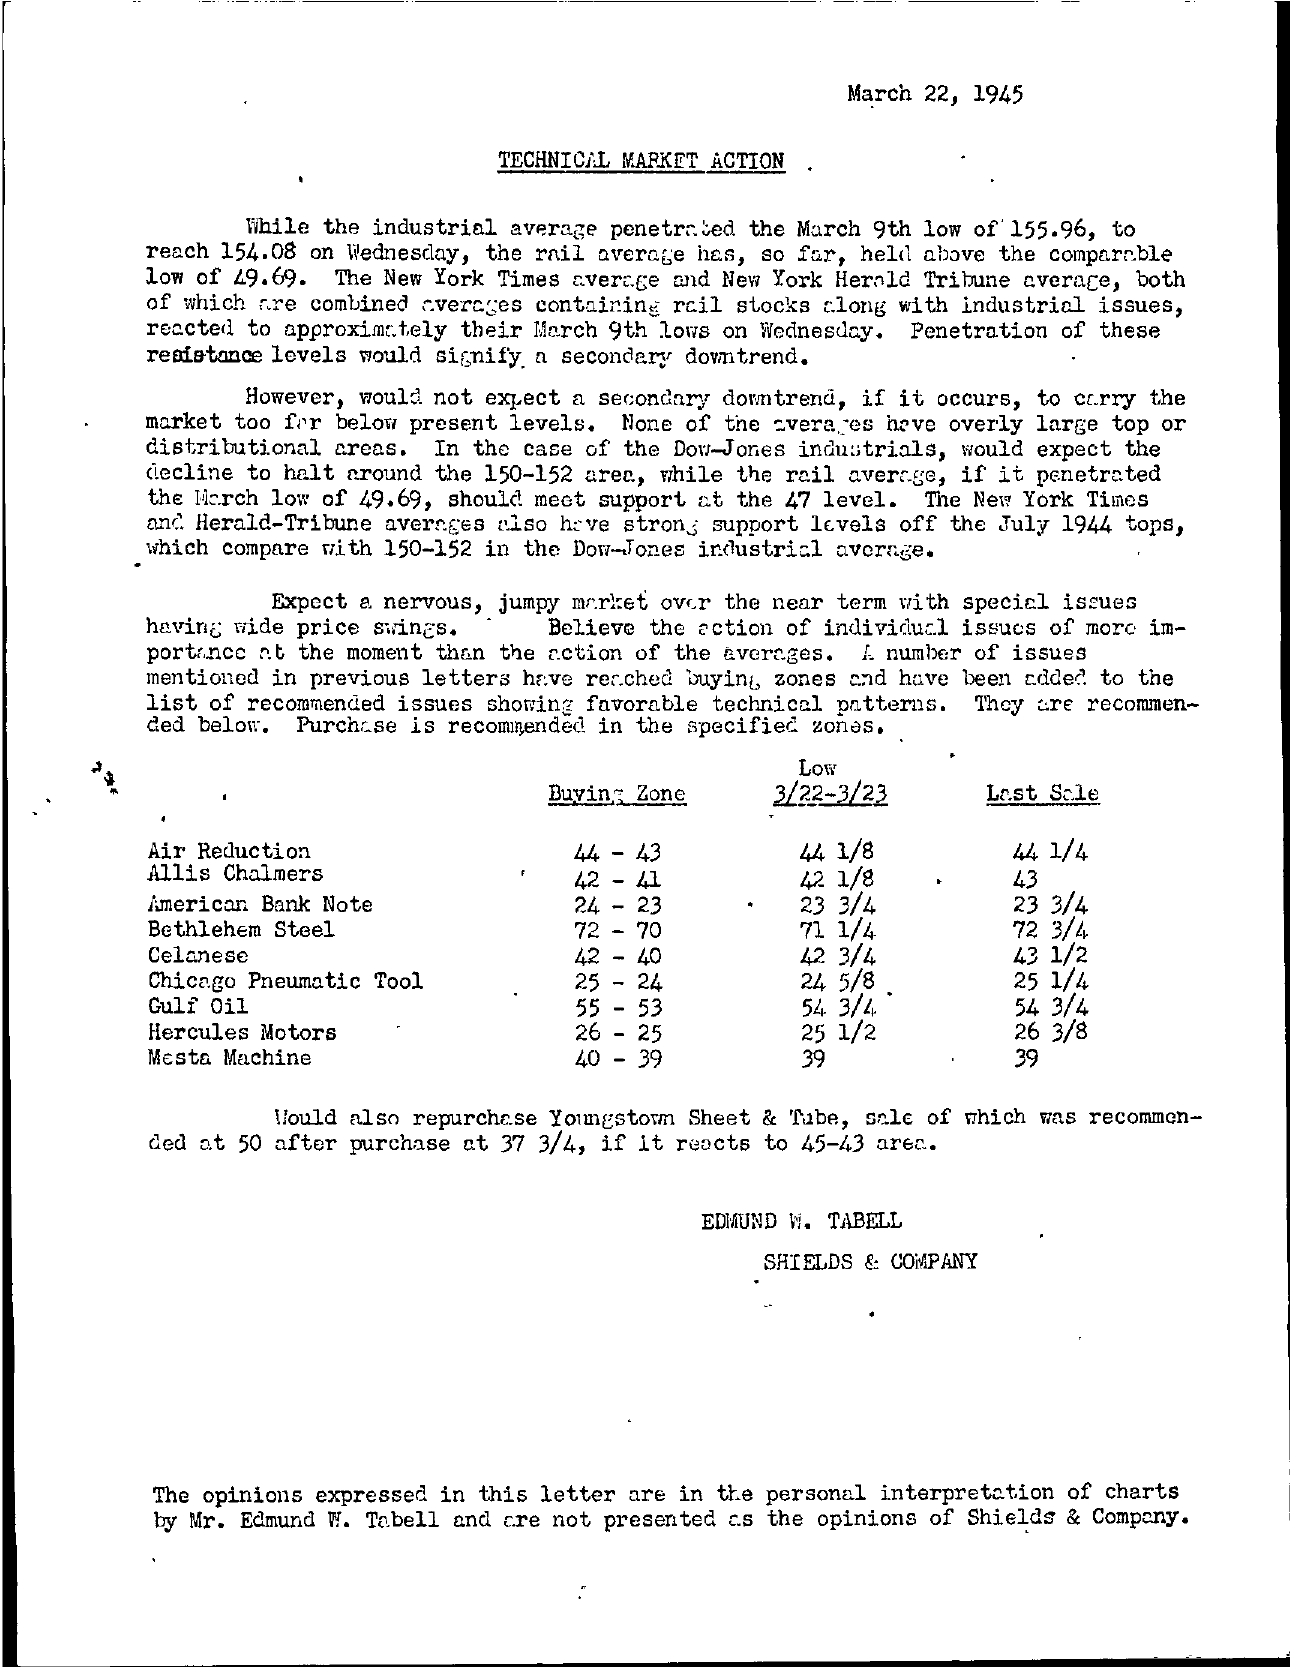 Tabell's Market Letter - March 22, 1945